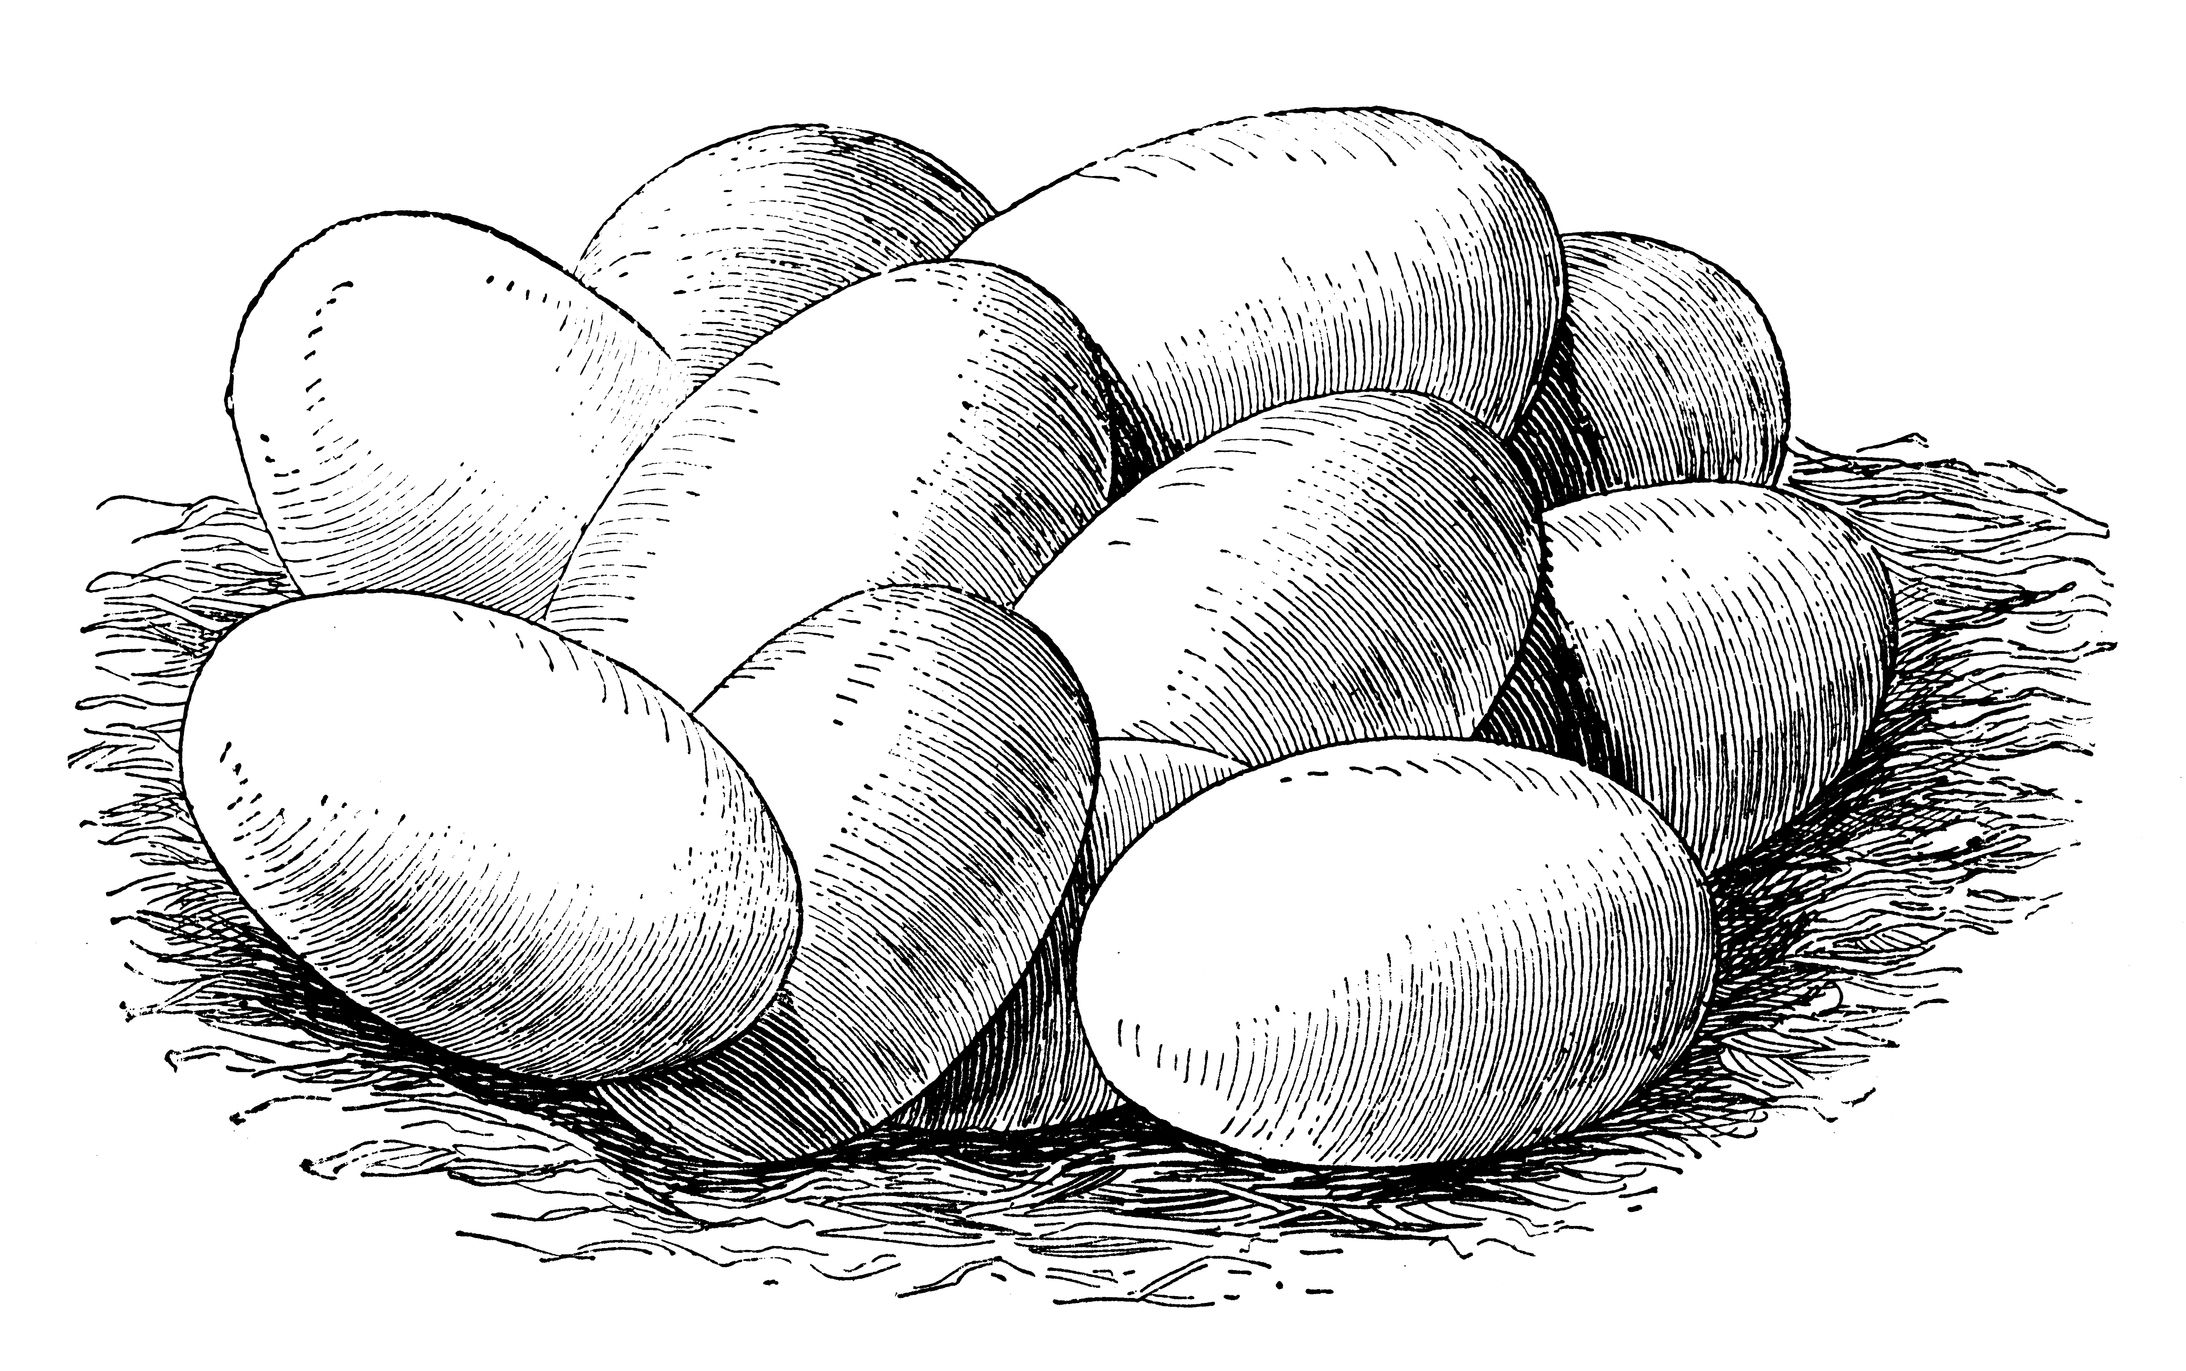 drawing of a group of snake eggs